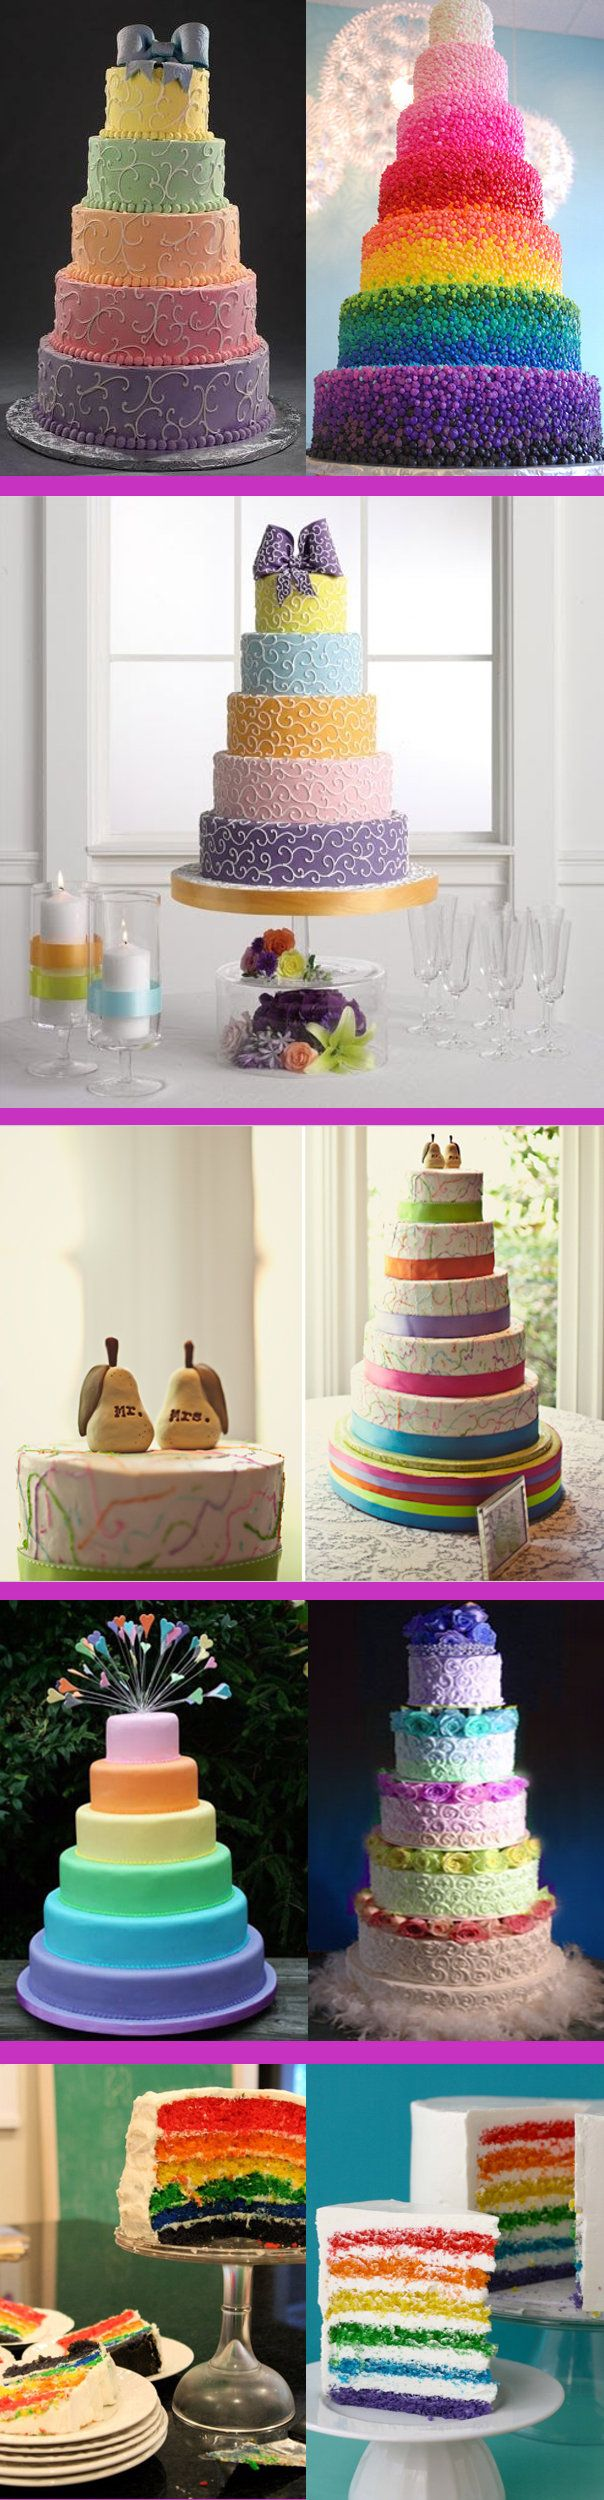 Coolest compilation of tiered rainbow cakes I ever found!!! Great for any ocassion.